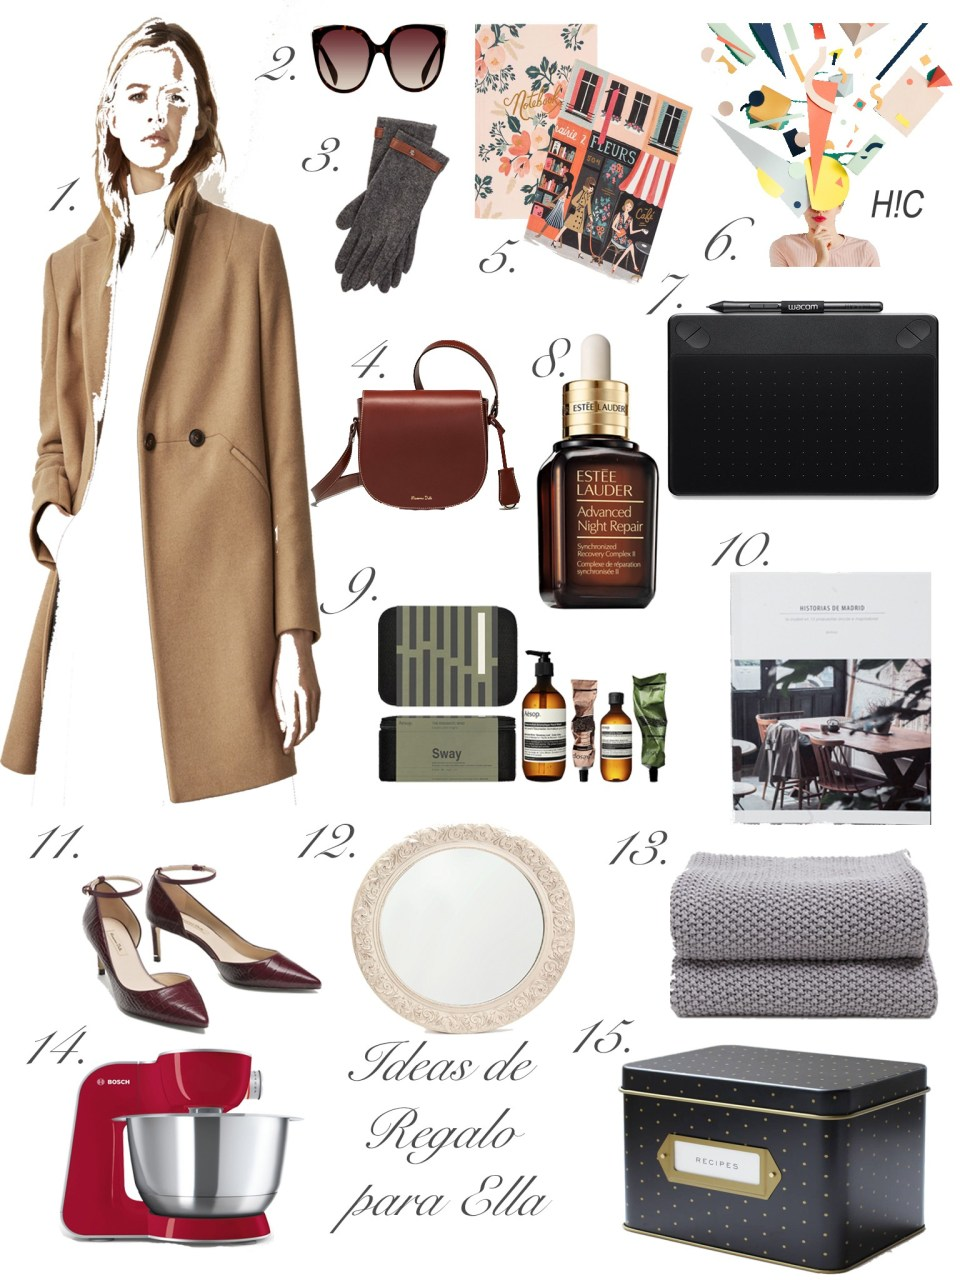 Gift Guide: 15 Ideas de Regalo para ella